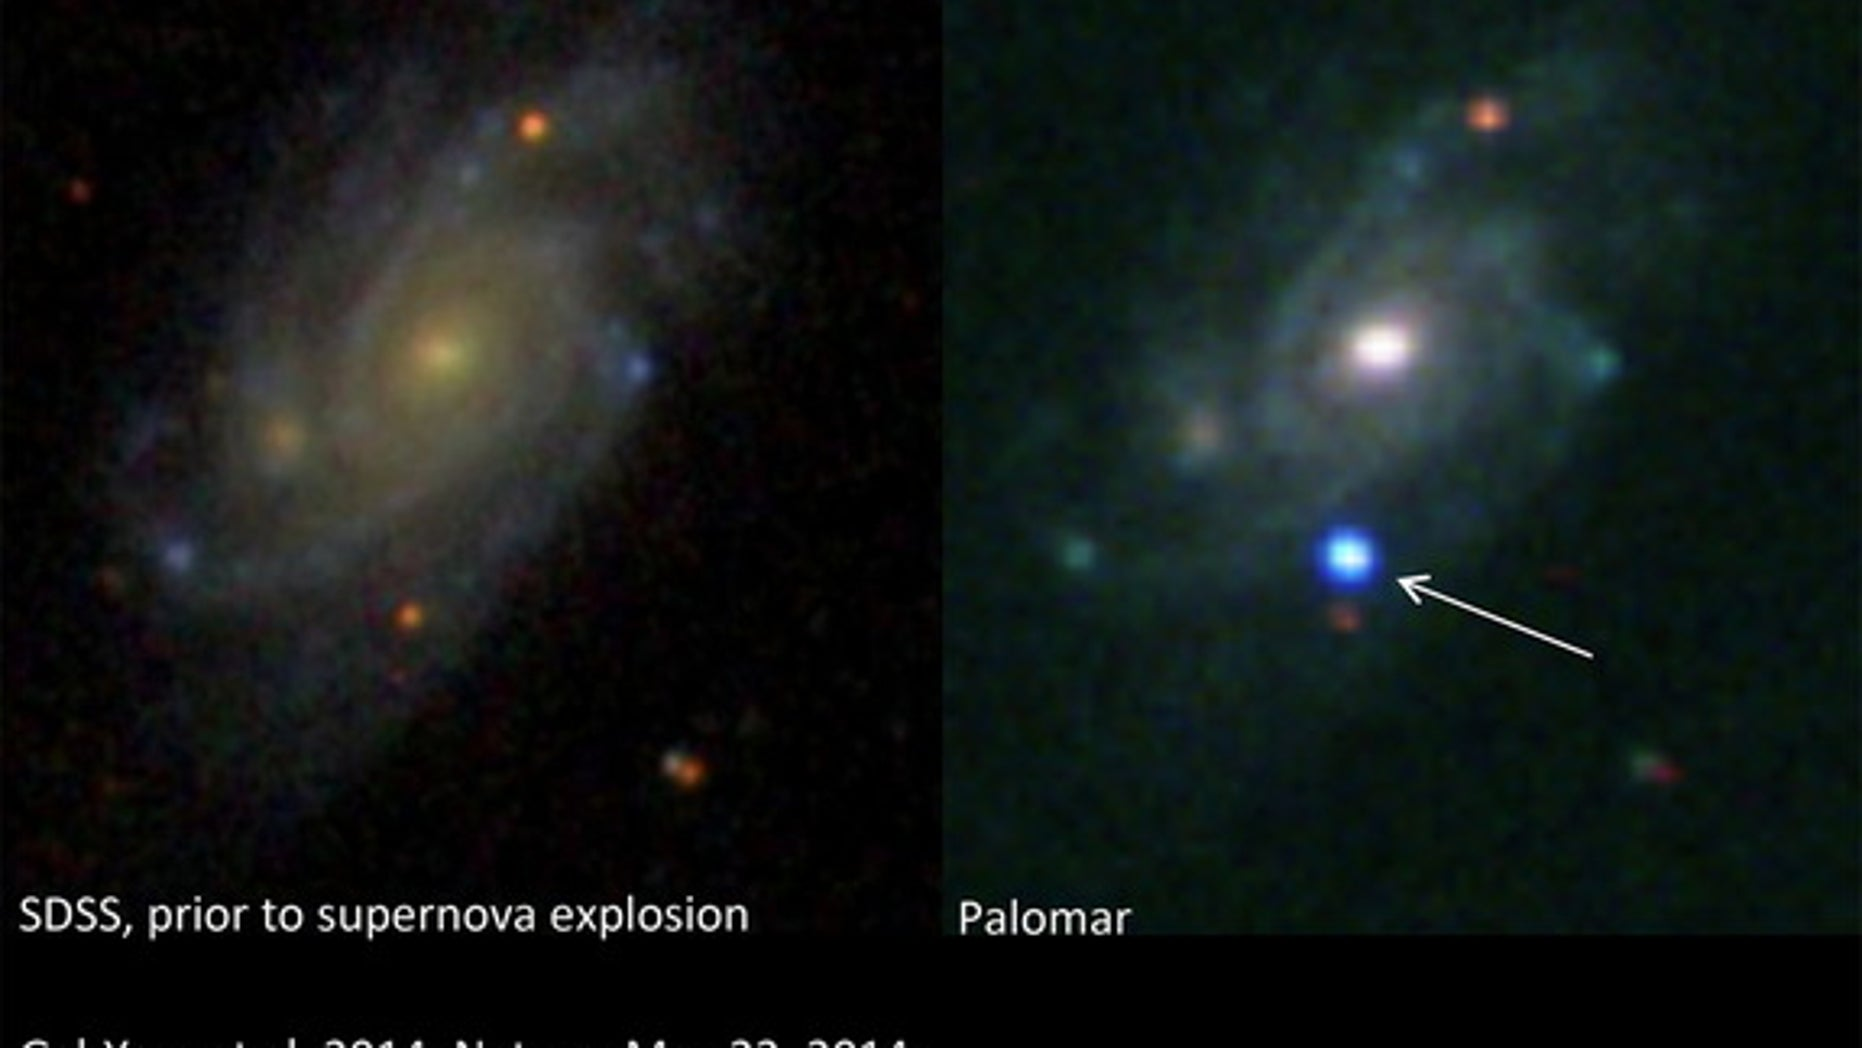 A brilliant supernova (right) explodes in the galaxy UGC 9379, located about 360 million light-years from Earth, in this before-and-after view. The left image was taken by the Sloan Digital Sky Survey, while the right image was obtained with a